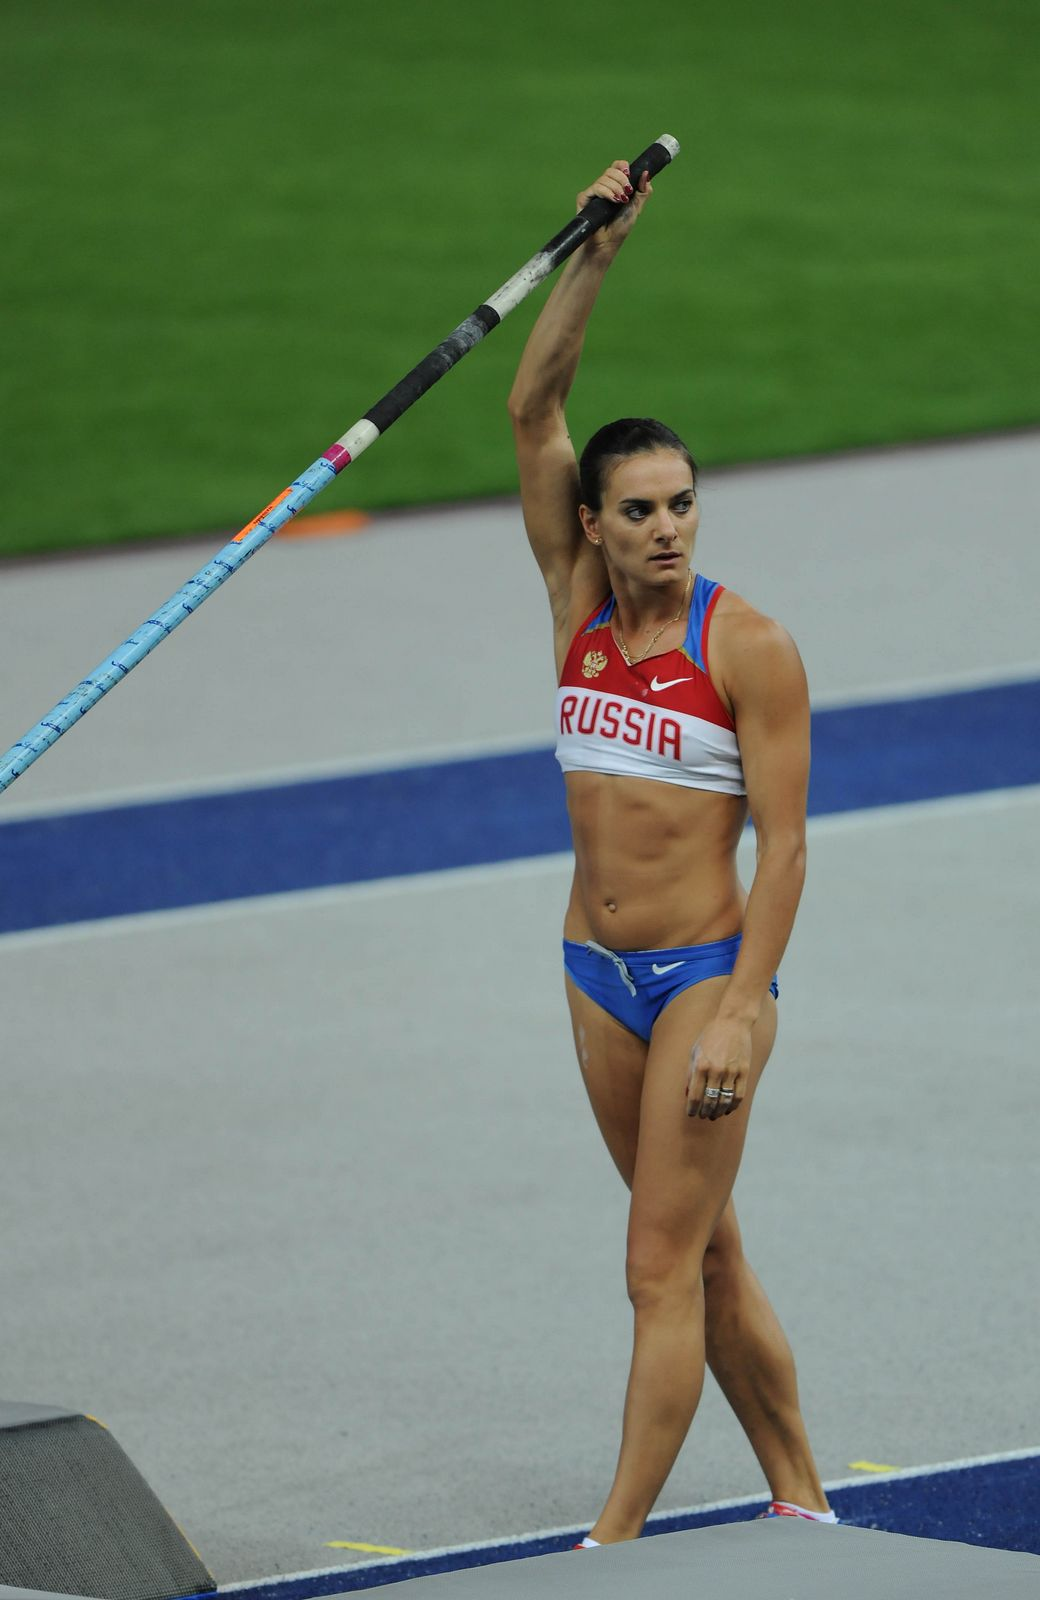 elena isinbayeva photo 110 of 119 pics wallpaper   photo